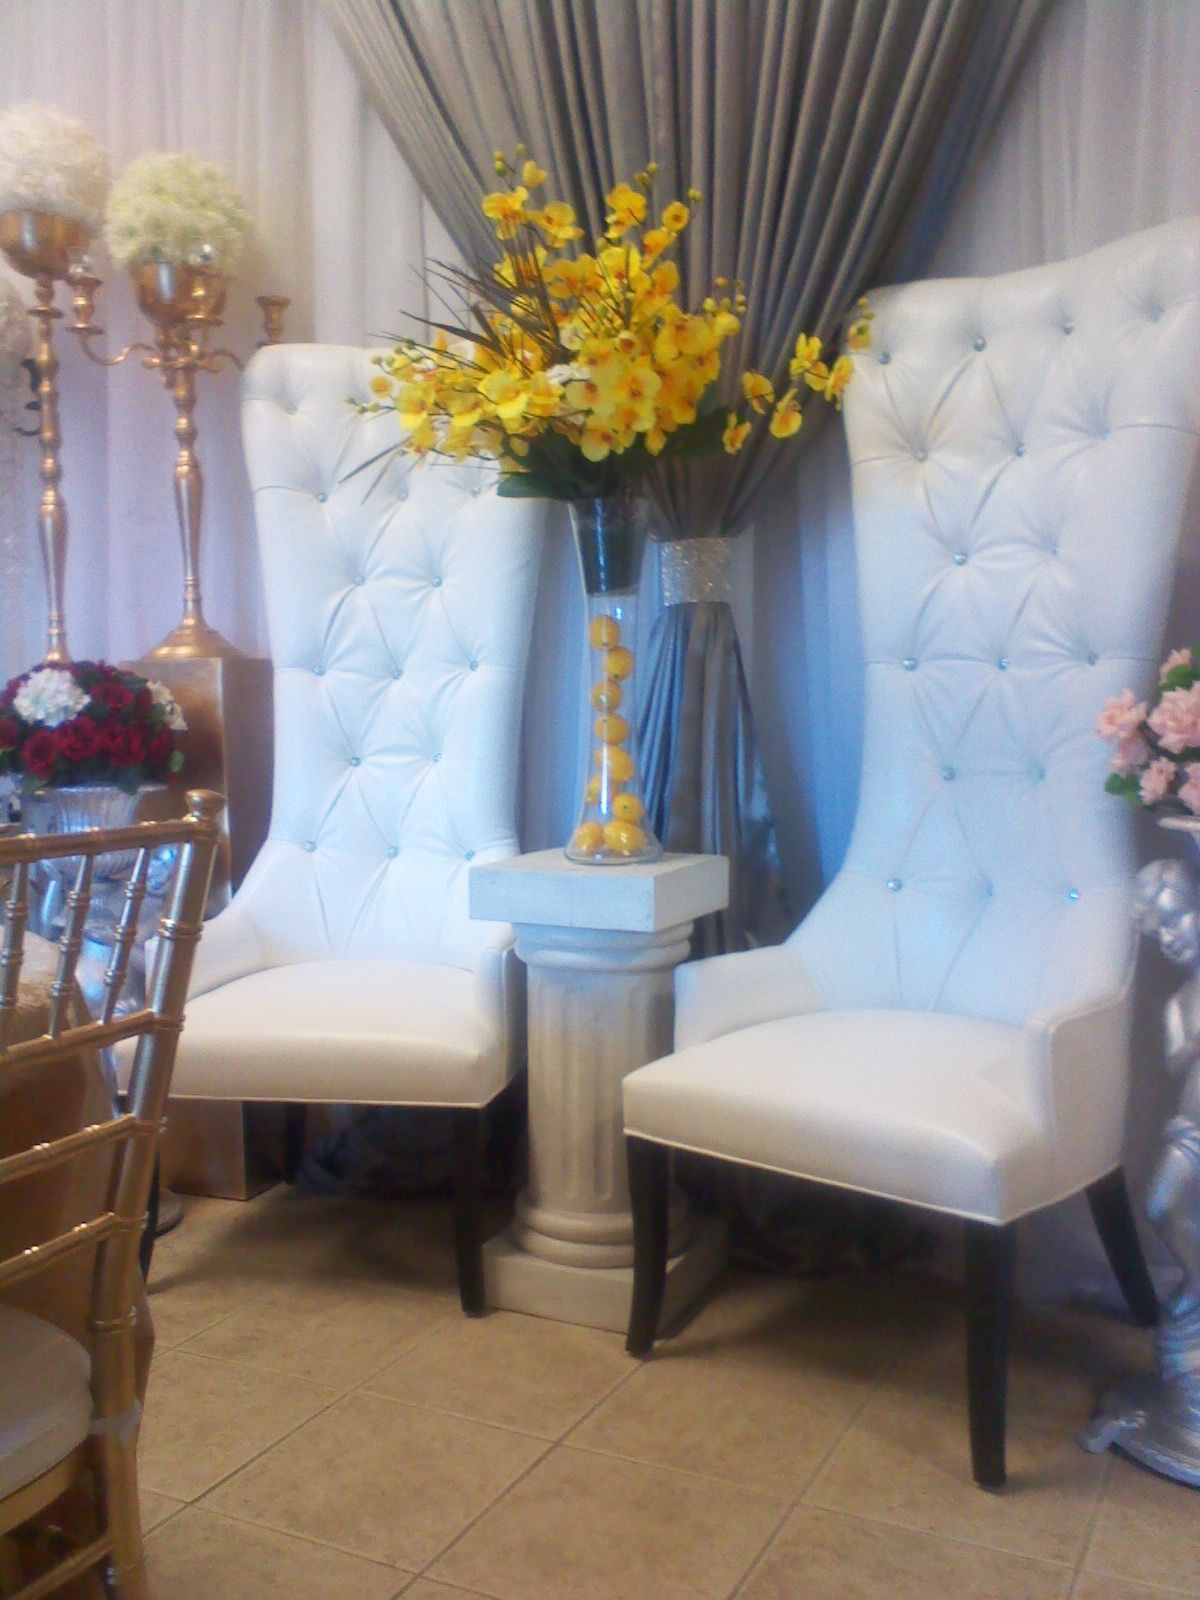 king and queen chair rentals toronto gta the ultimate wedding project the ultimate wedding. Black Bedroom Furniture Sets. Home Design Ideas